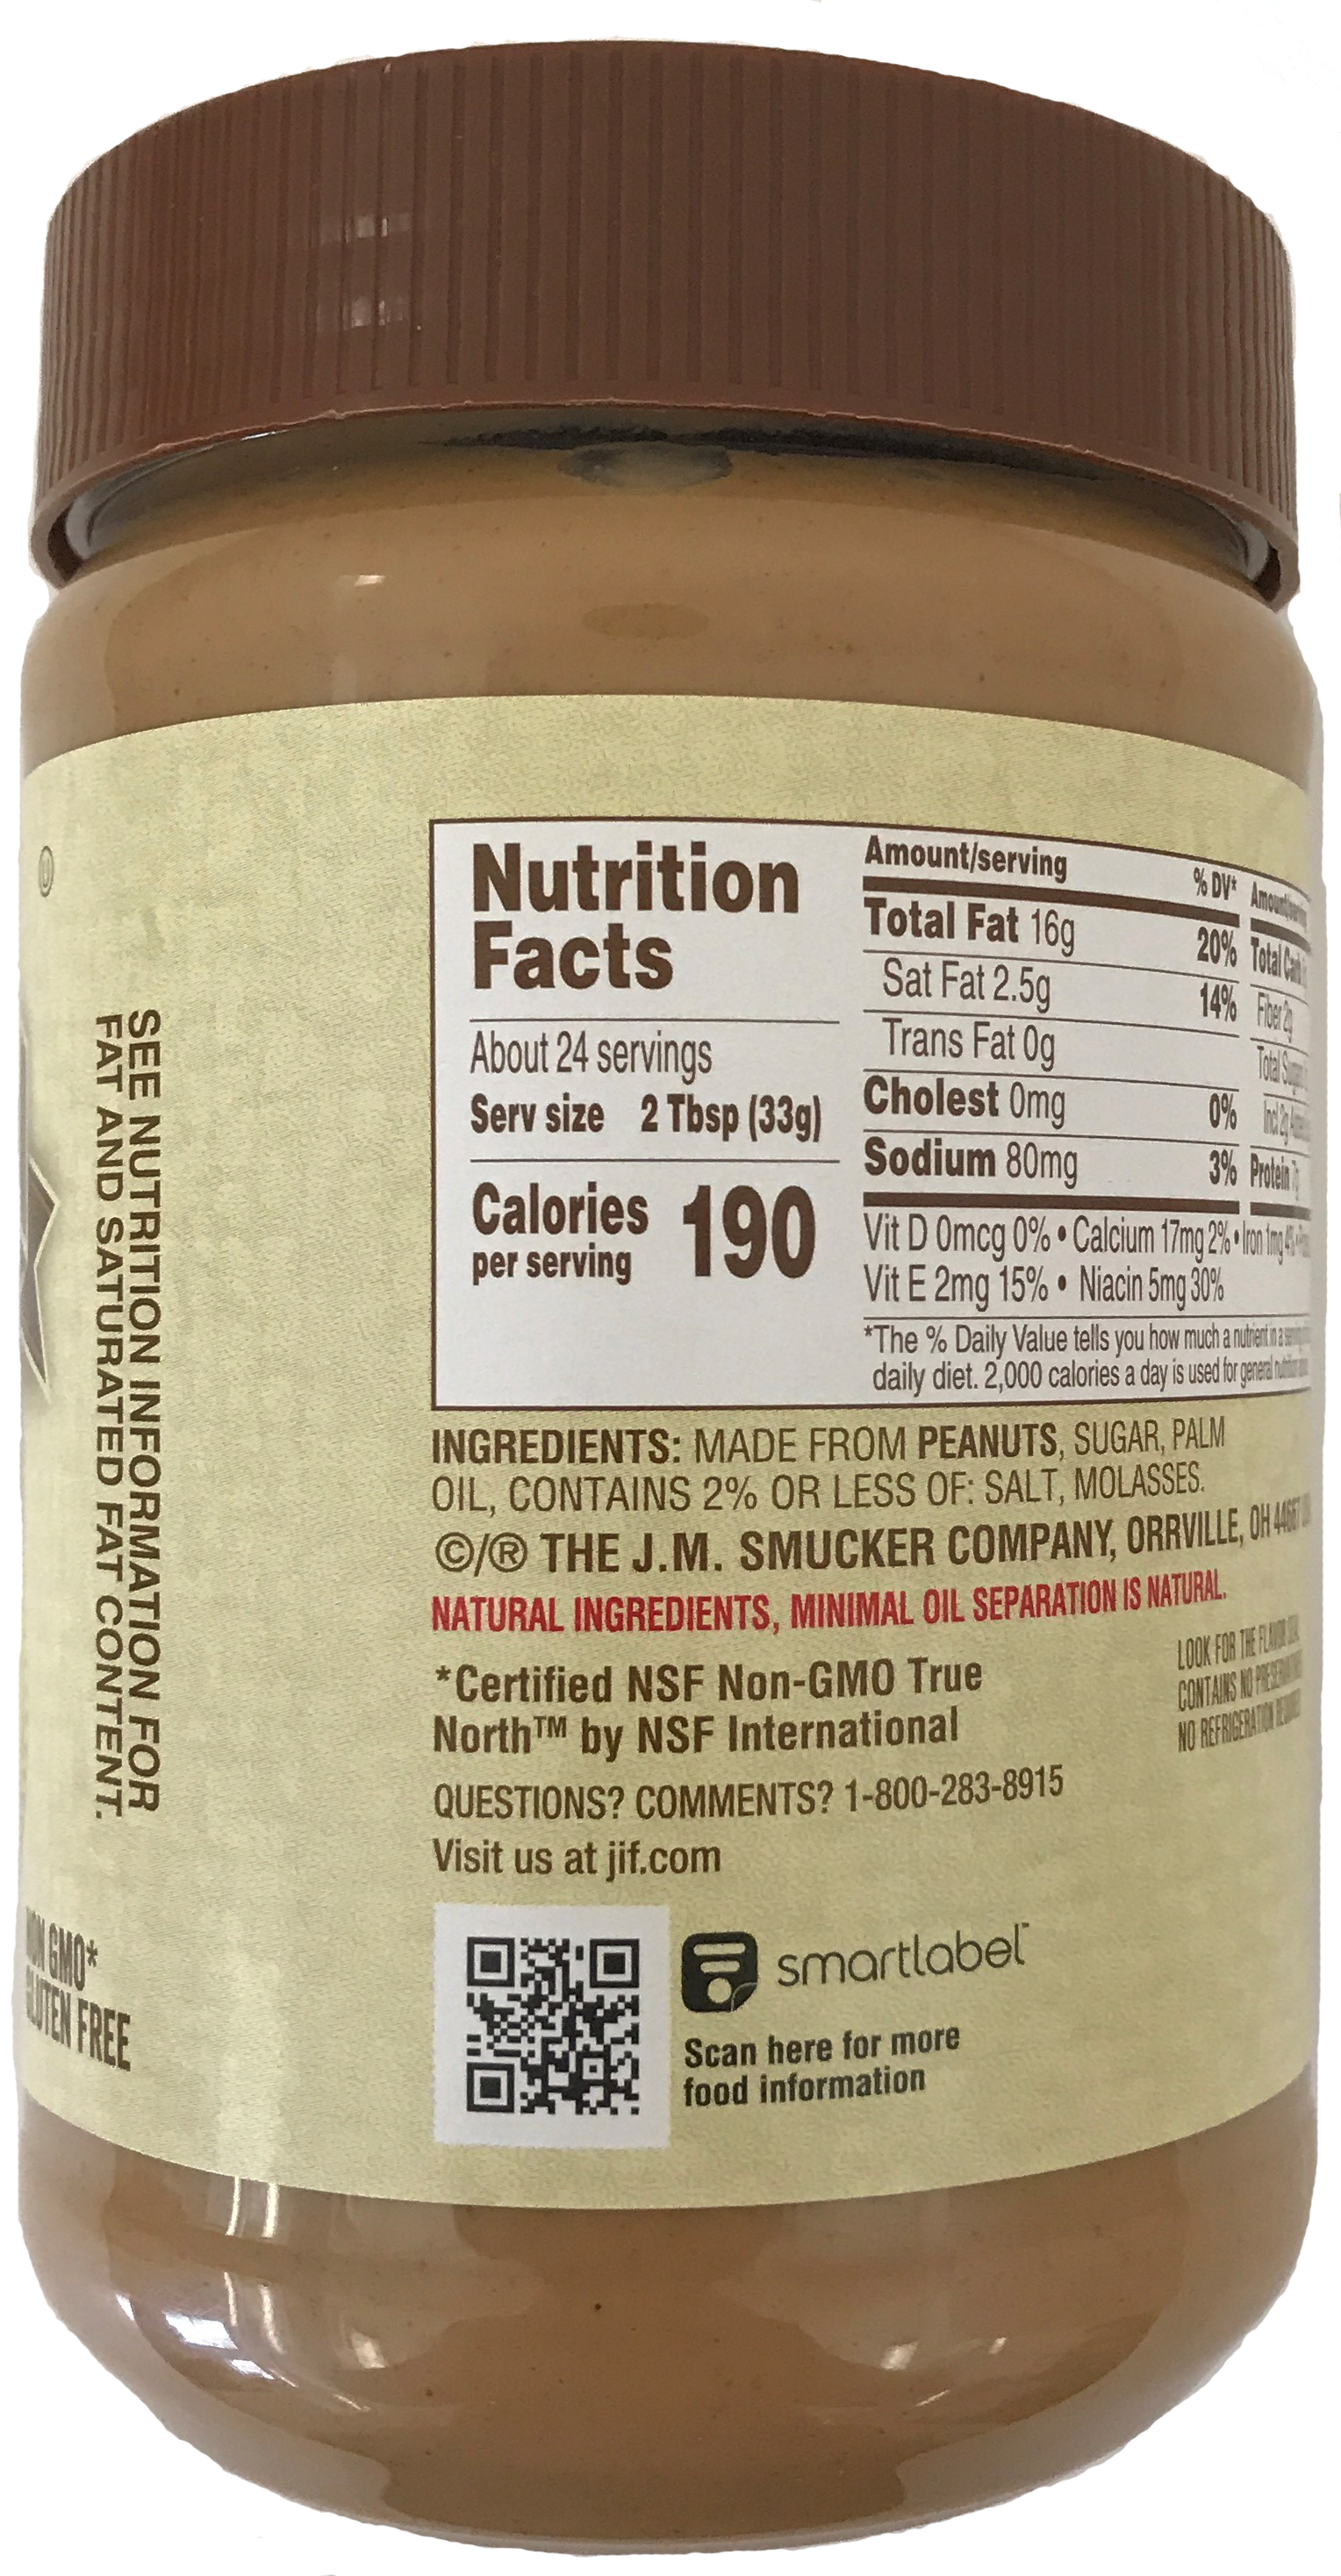 The J.M. Smucker Company- Jif Natural Creamy Peanut Butter- Back